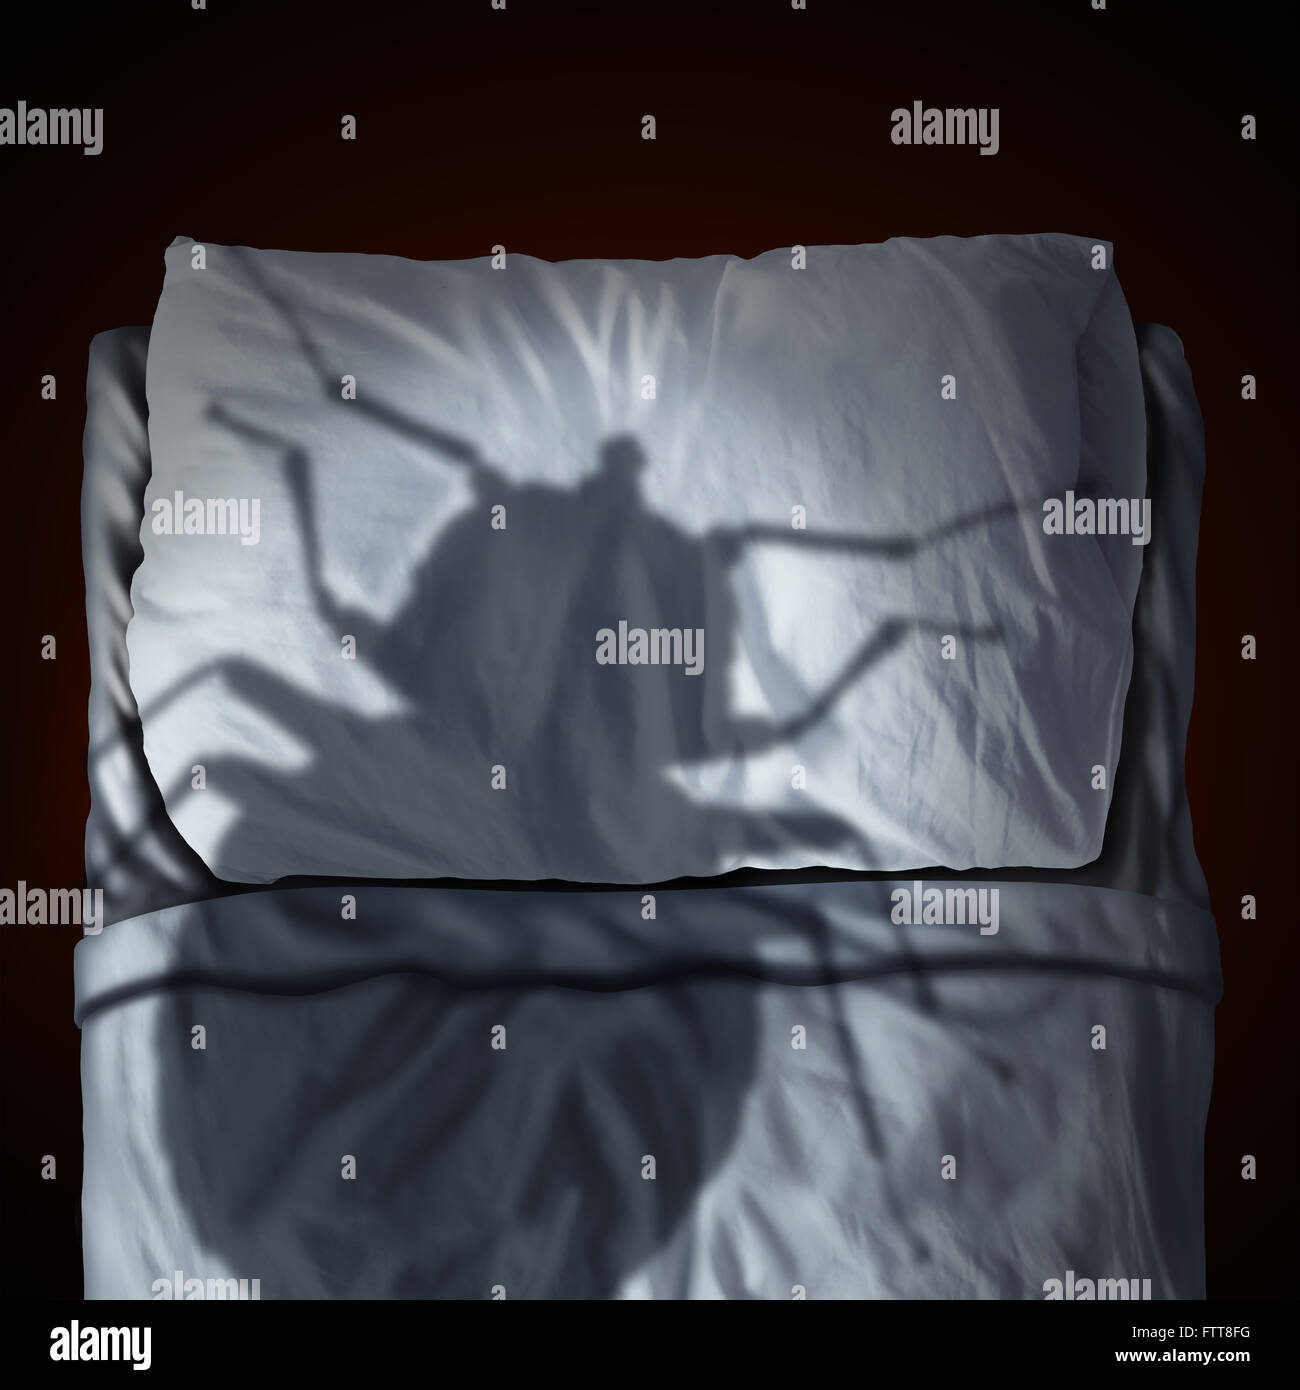 Bed bug fear or bedbug worry concept as a cast shadow of a a parasitic insect pest resting on a pillow and sheets - Stock Image